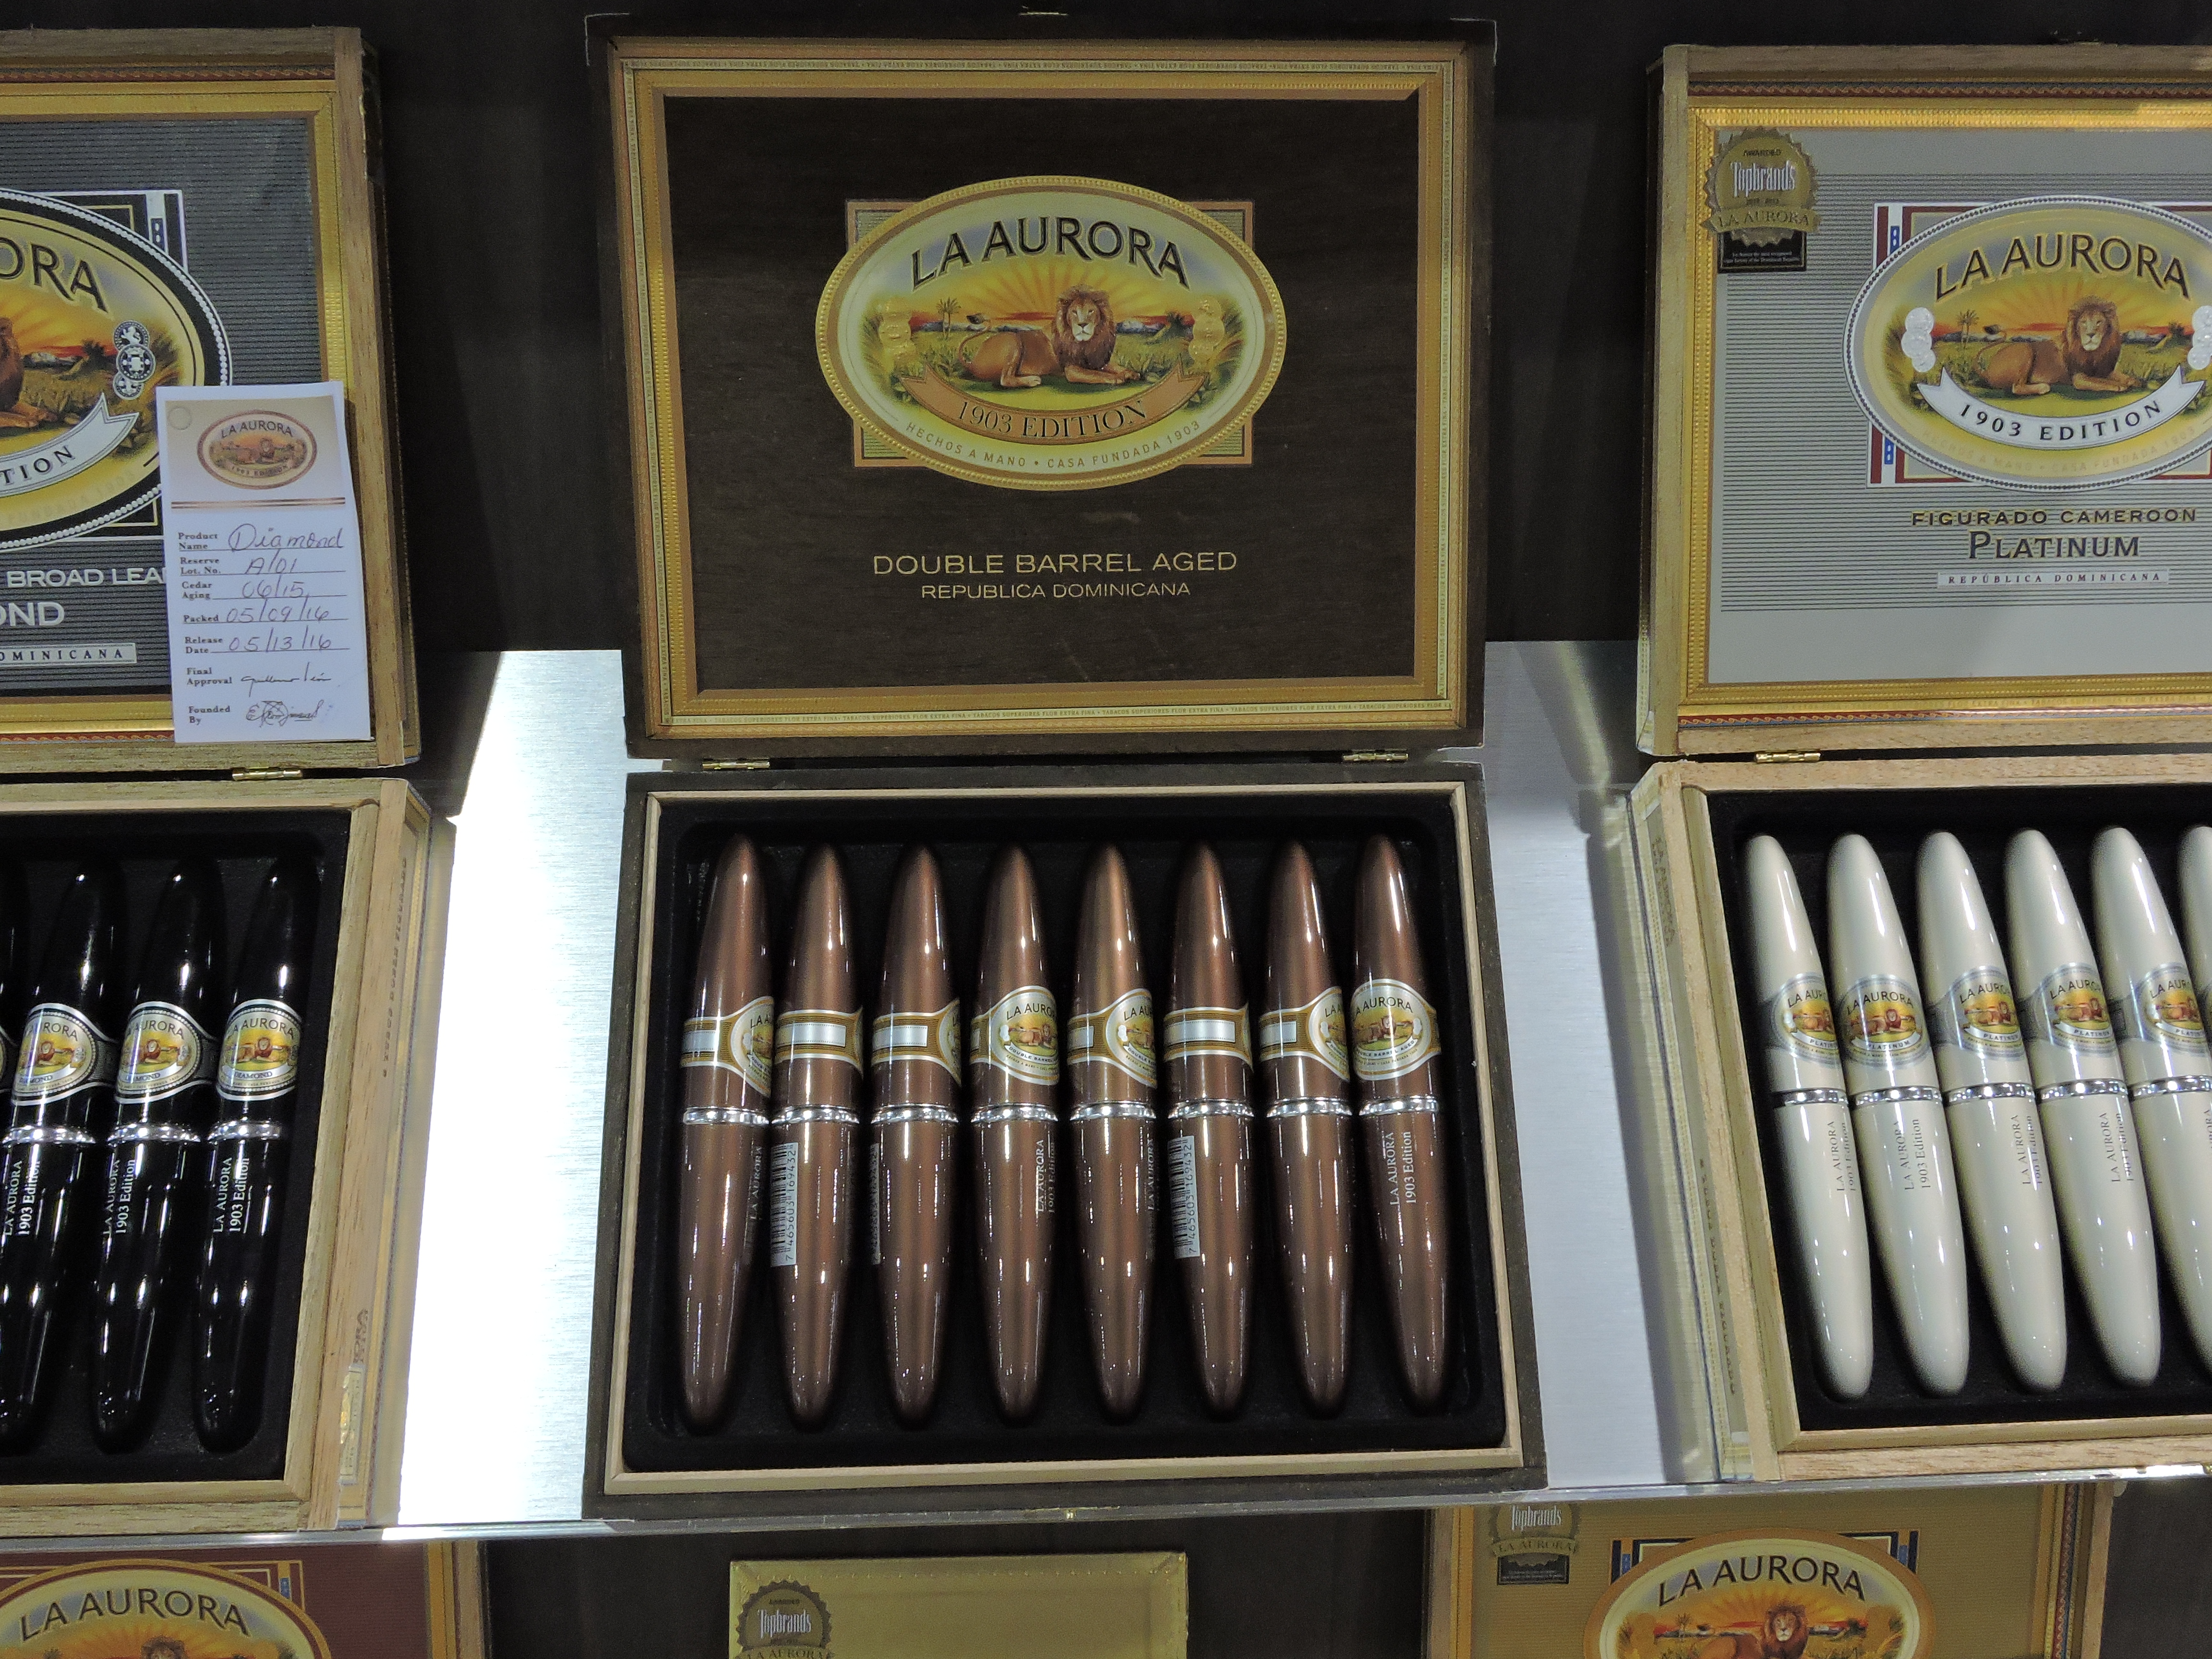 Cigar News: La Aurora Preferidos 1903 Edition Double Barrel Aged Unveiled at 2016 IPCPR